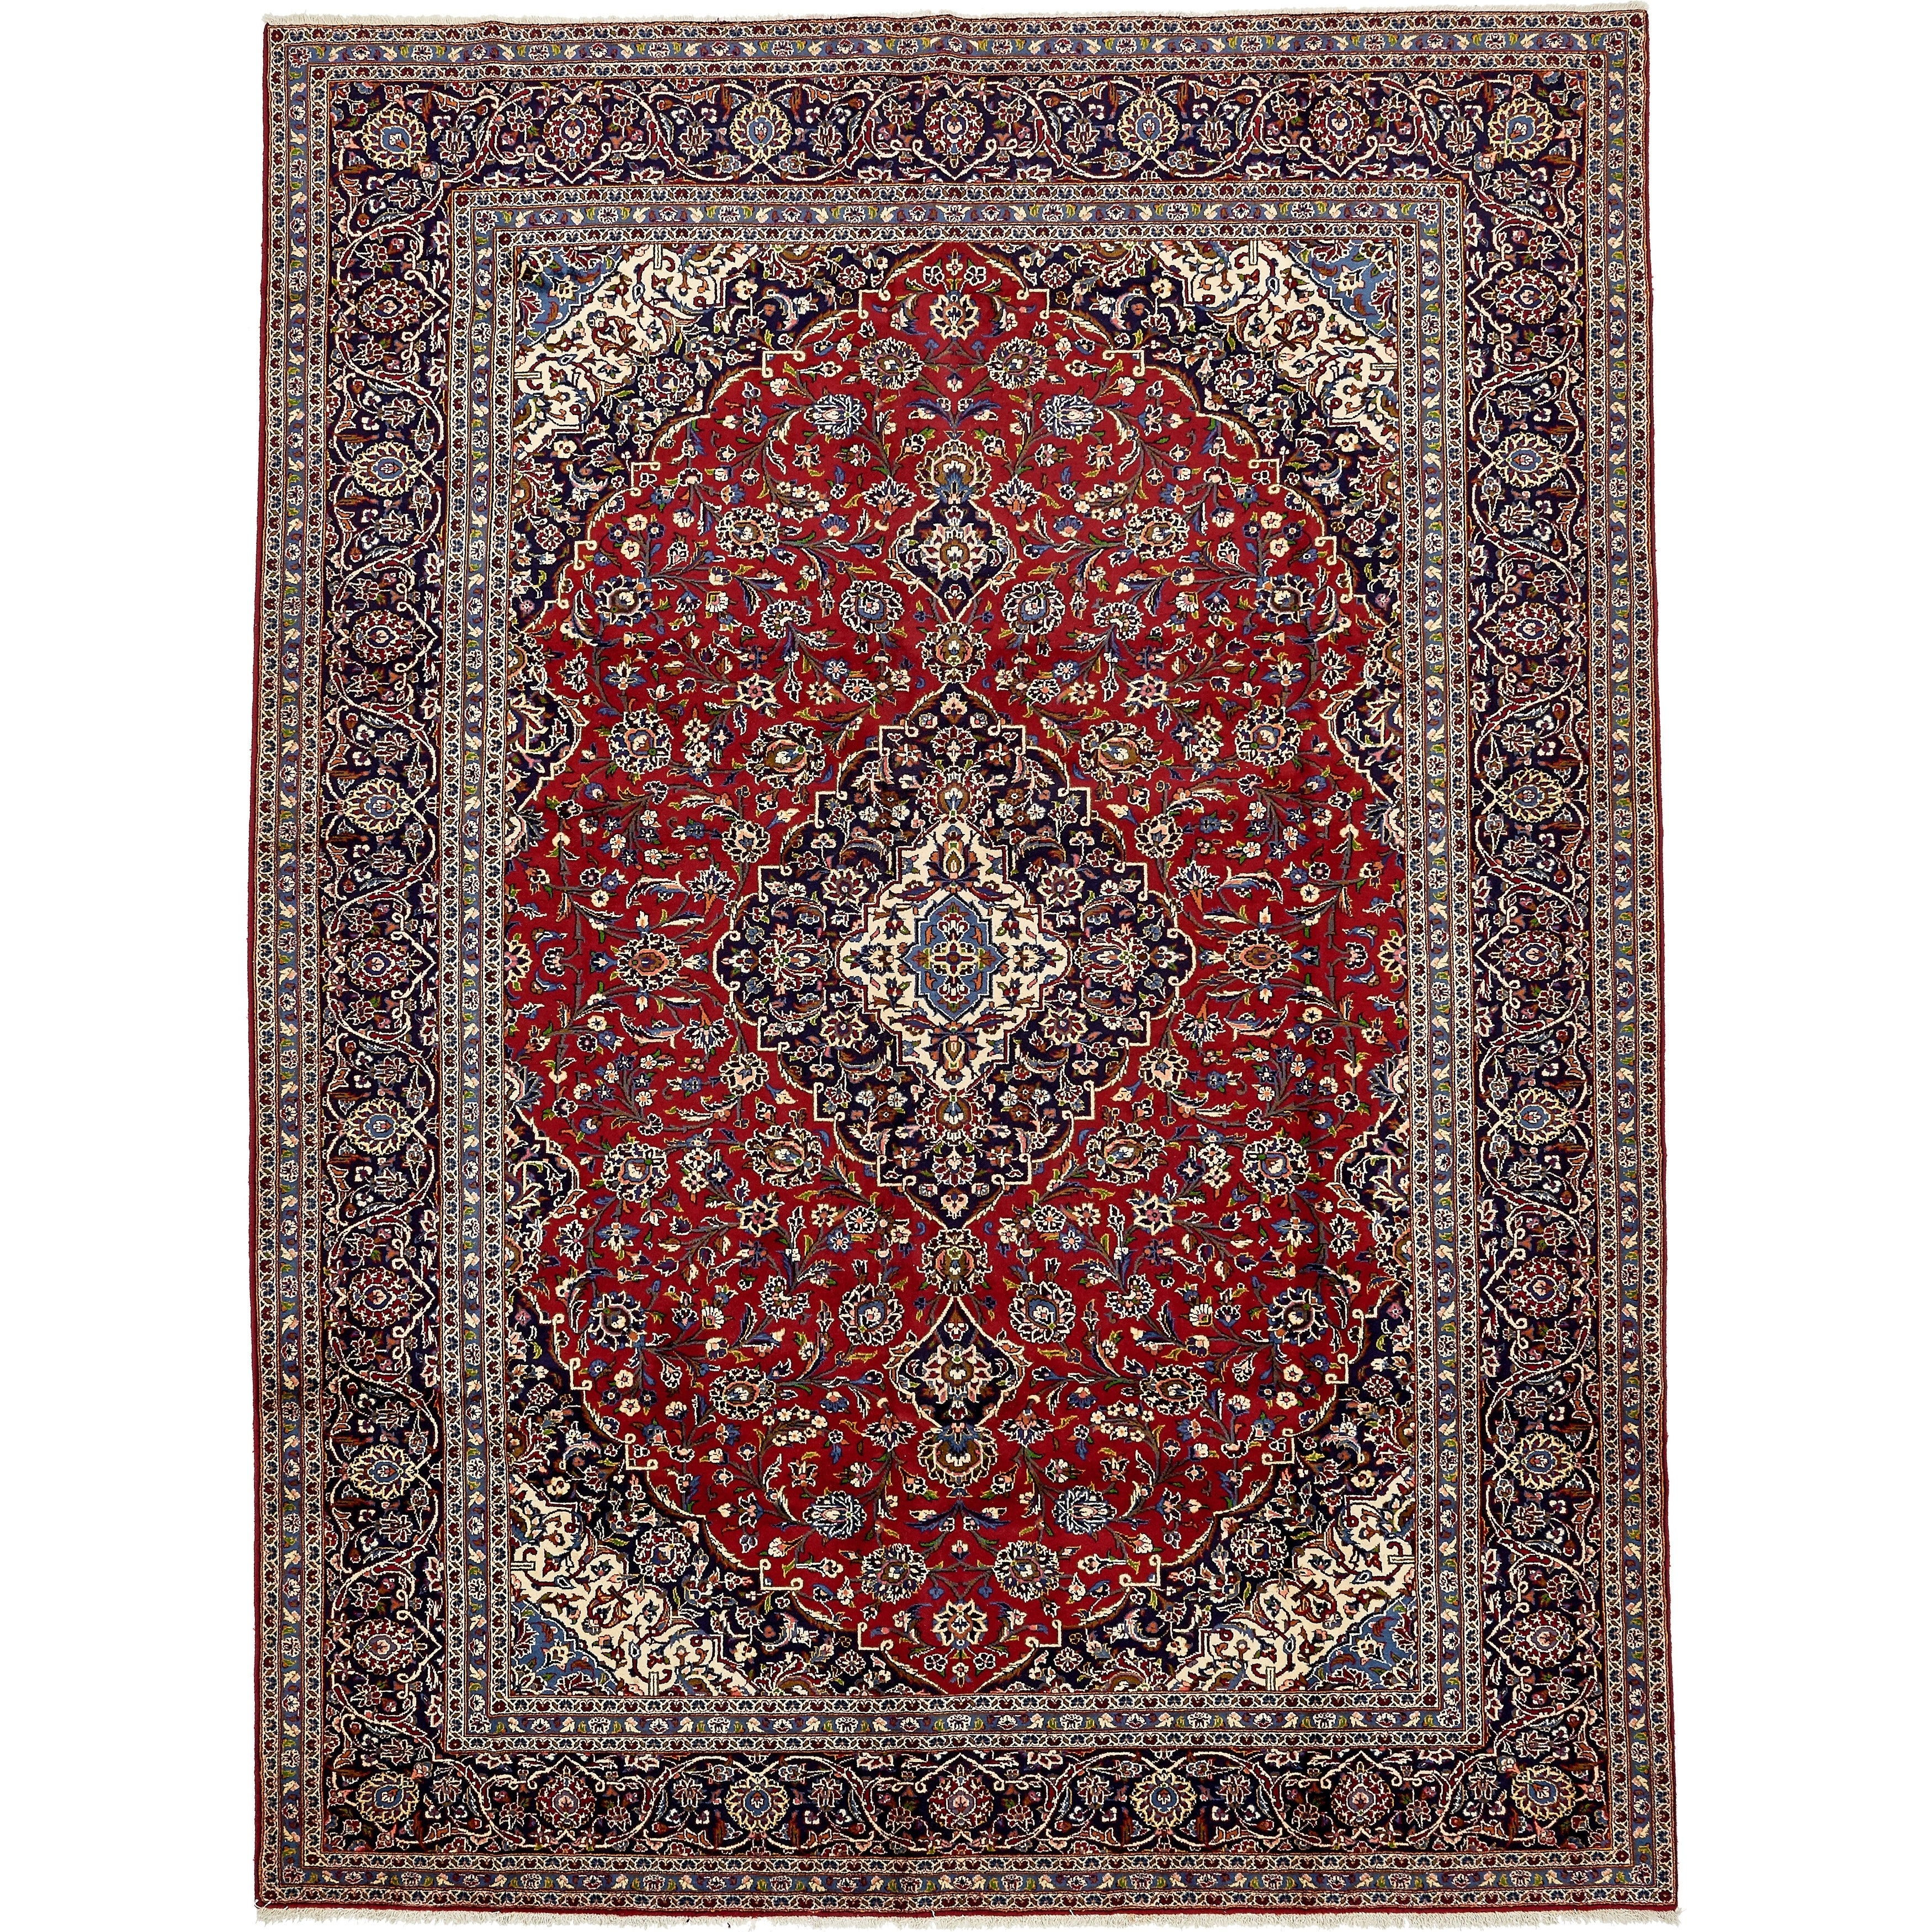 Hand Knotted Kashan Wool Area Rug - 9' 8 x 13' (Red - 9' 8 x 13')